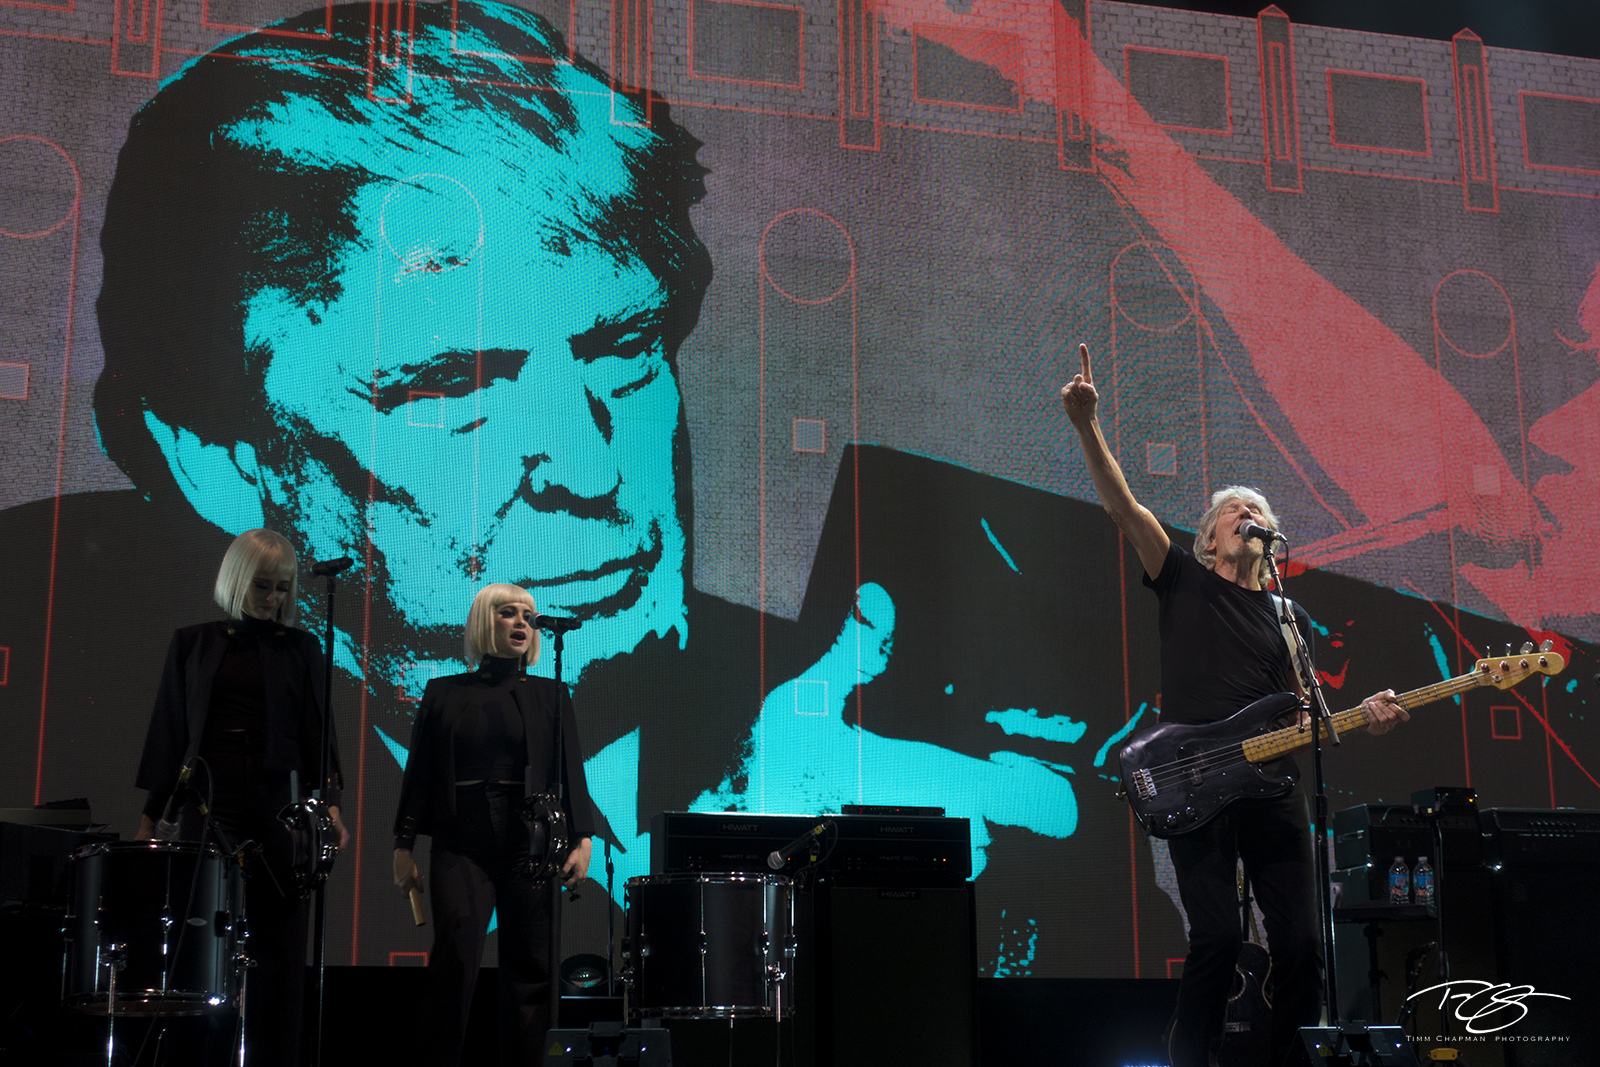 roger waters, pink floyd, in concert, performing, us + them, us and them, acoustic guitar, dark side of the moon, the wall, Holly Laessig, Jess Wolfe, trump, donald trump, photo